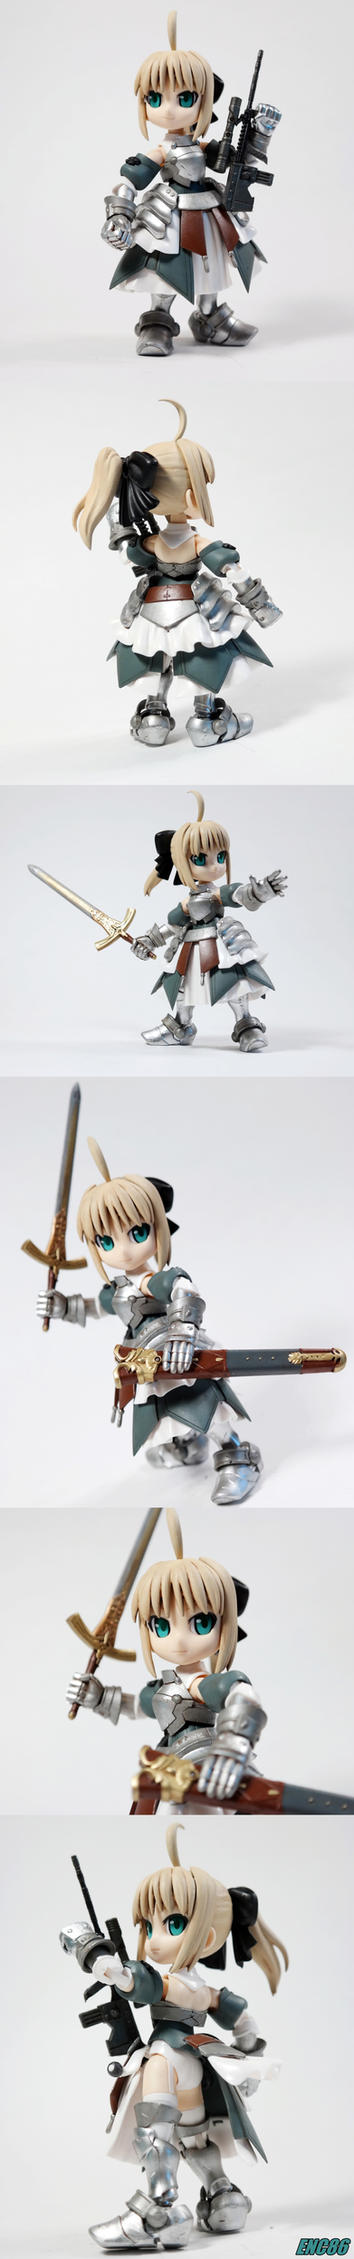 Saber Lily by enc86